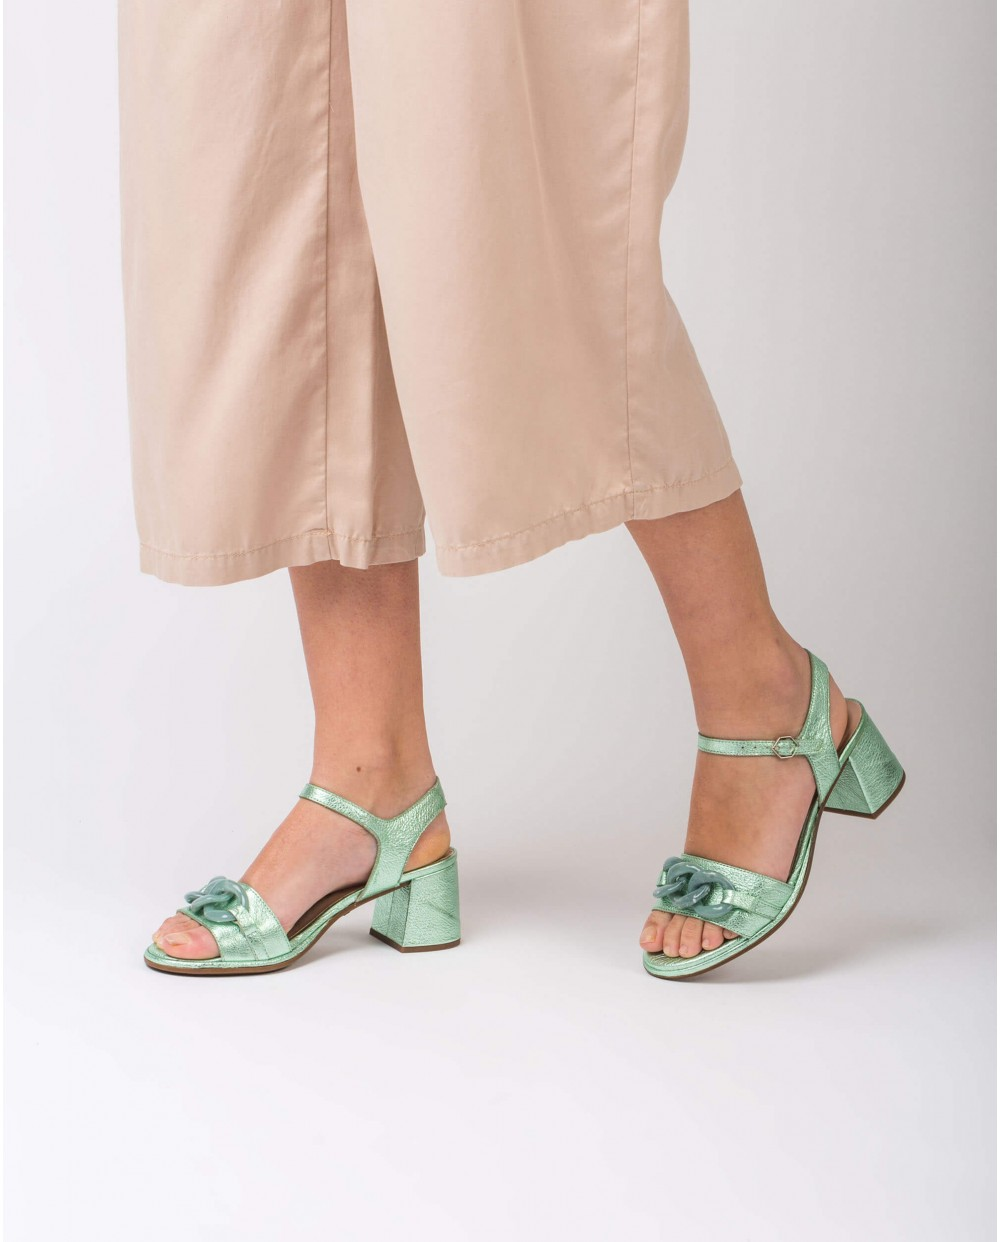 Wonders-Women-Leather sandal with chain